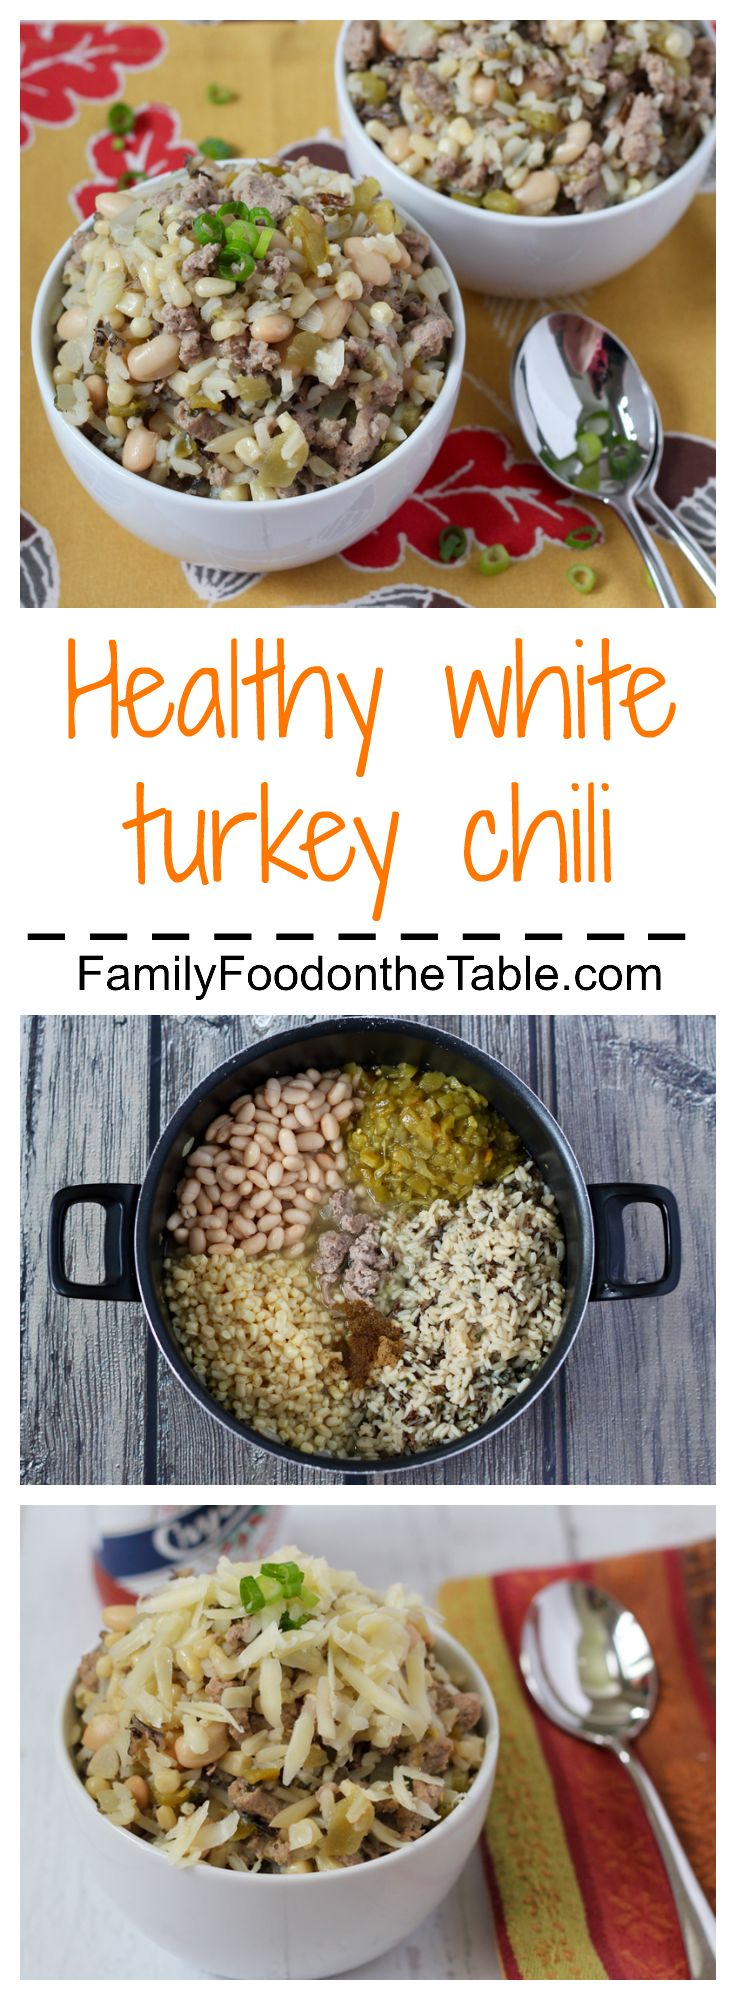 A delicious and healthy white turkey chili with wild rice | FamilyFoodontheTable.com